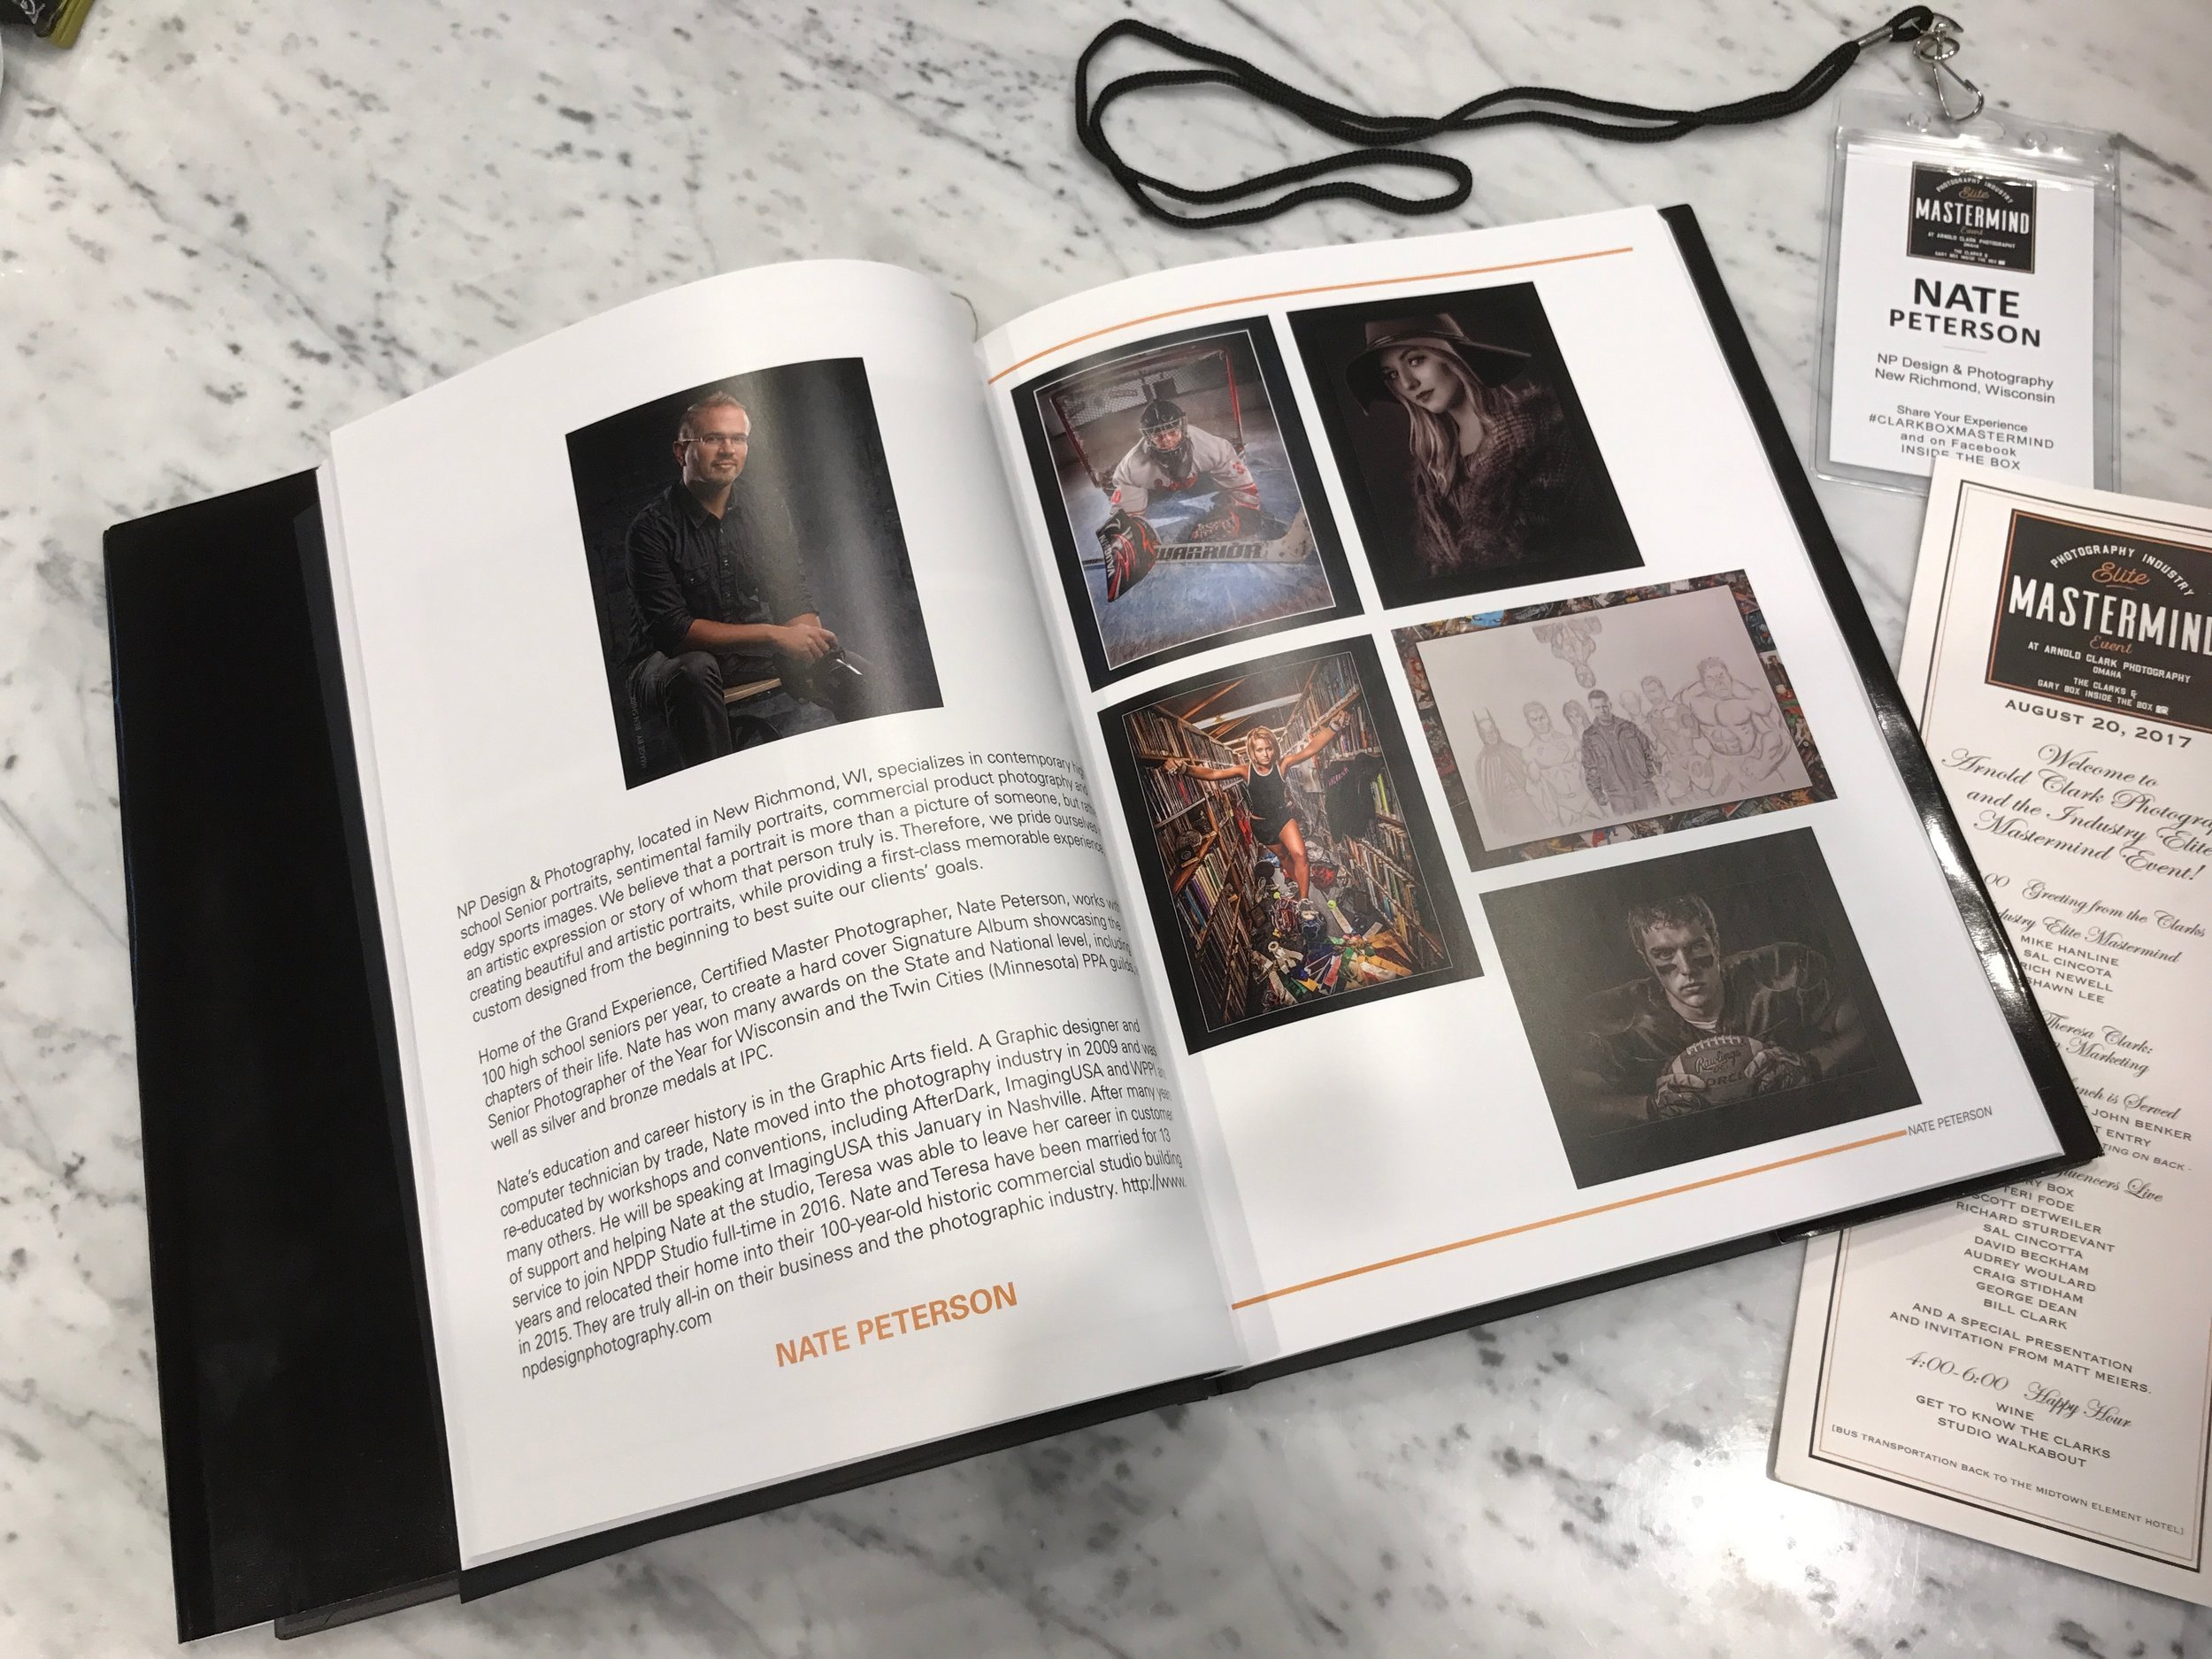 Nate's photography was featured in the 'Elite Masterminds' commemorative book.